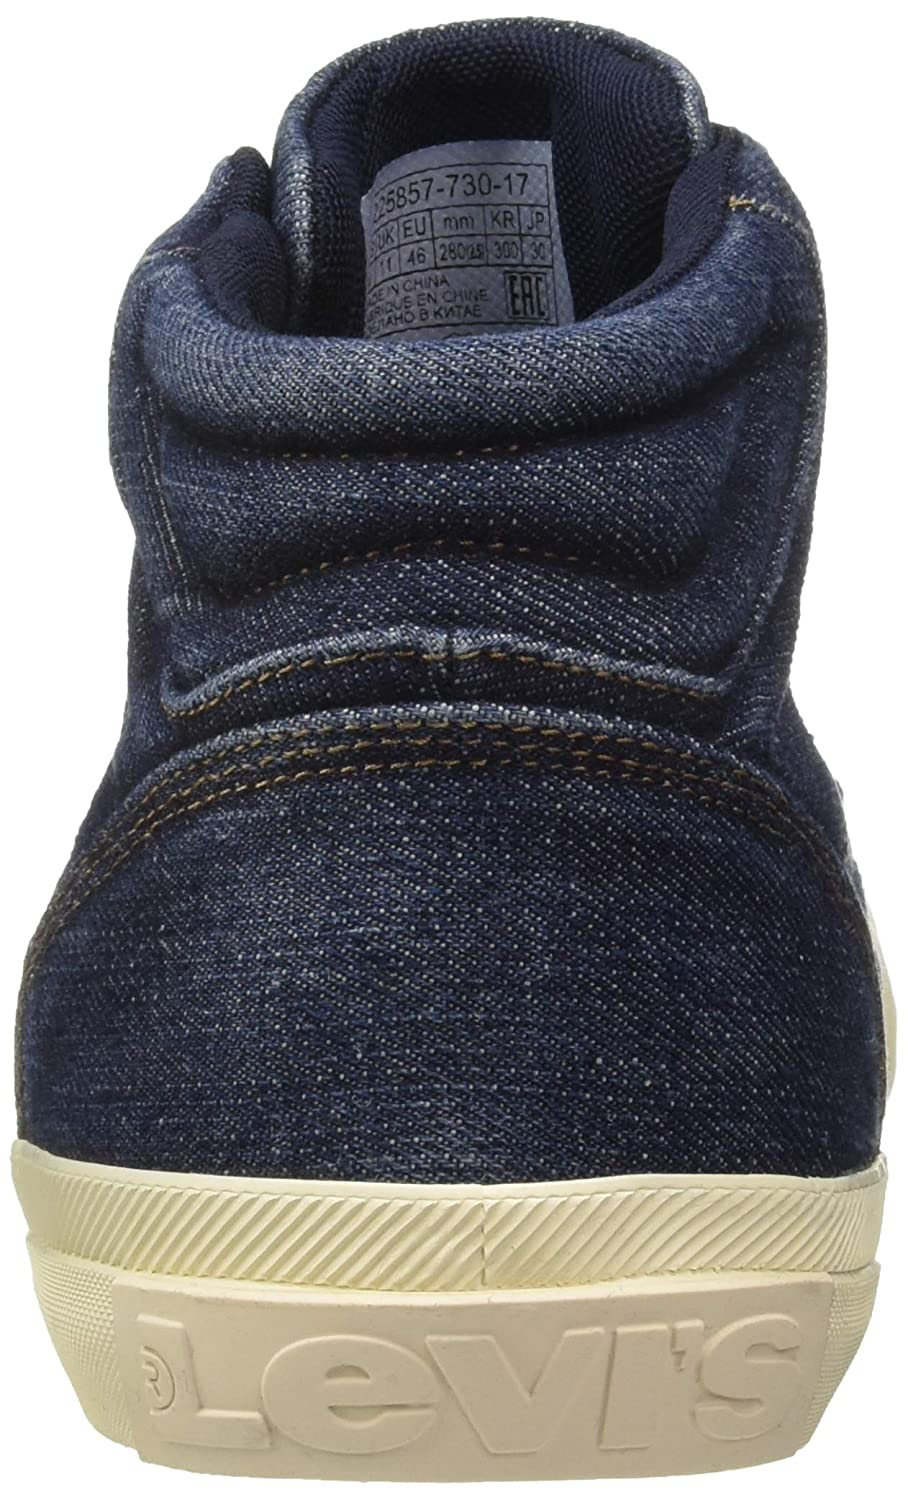 Buy Levi's Men's Bass Mid Sneakers at